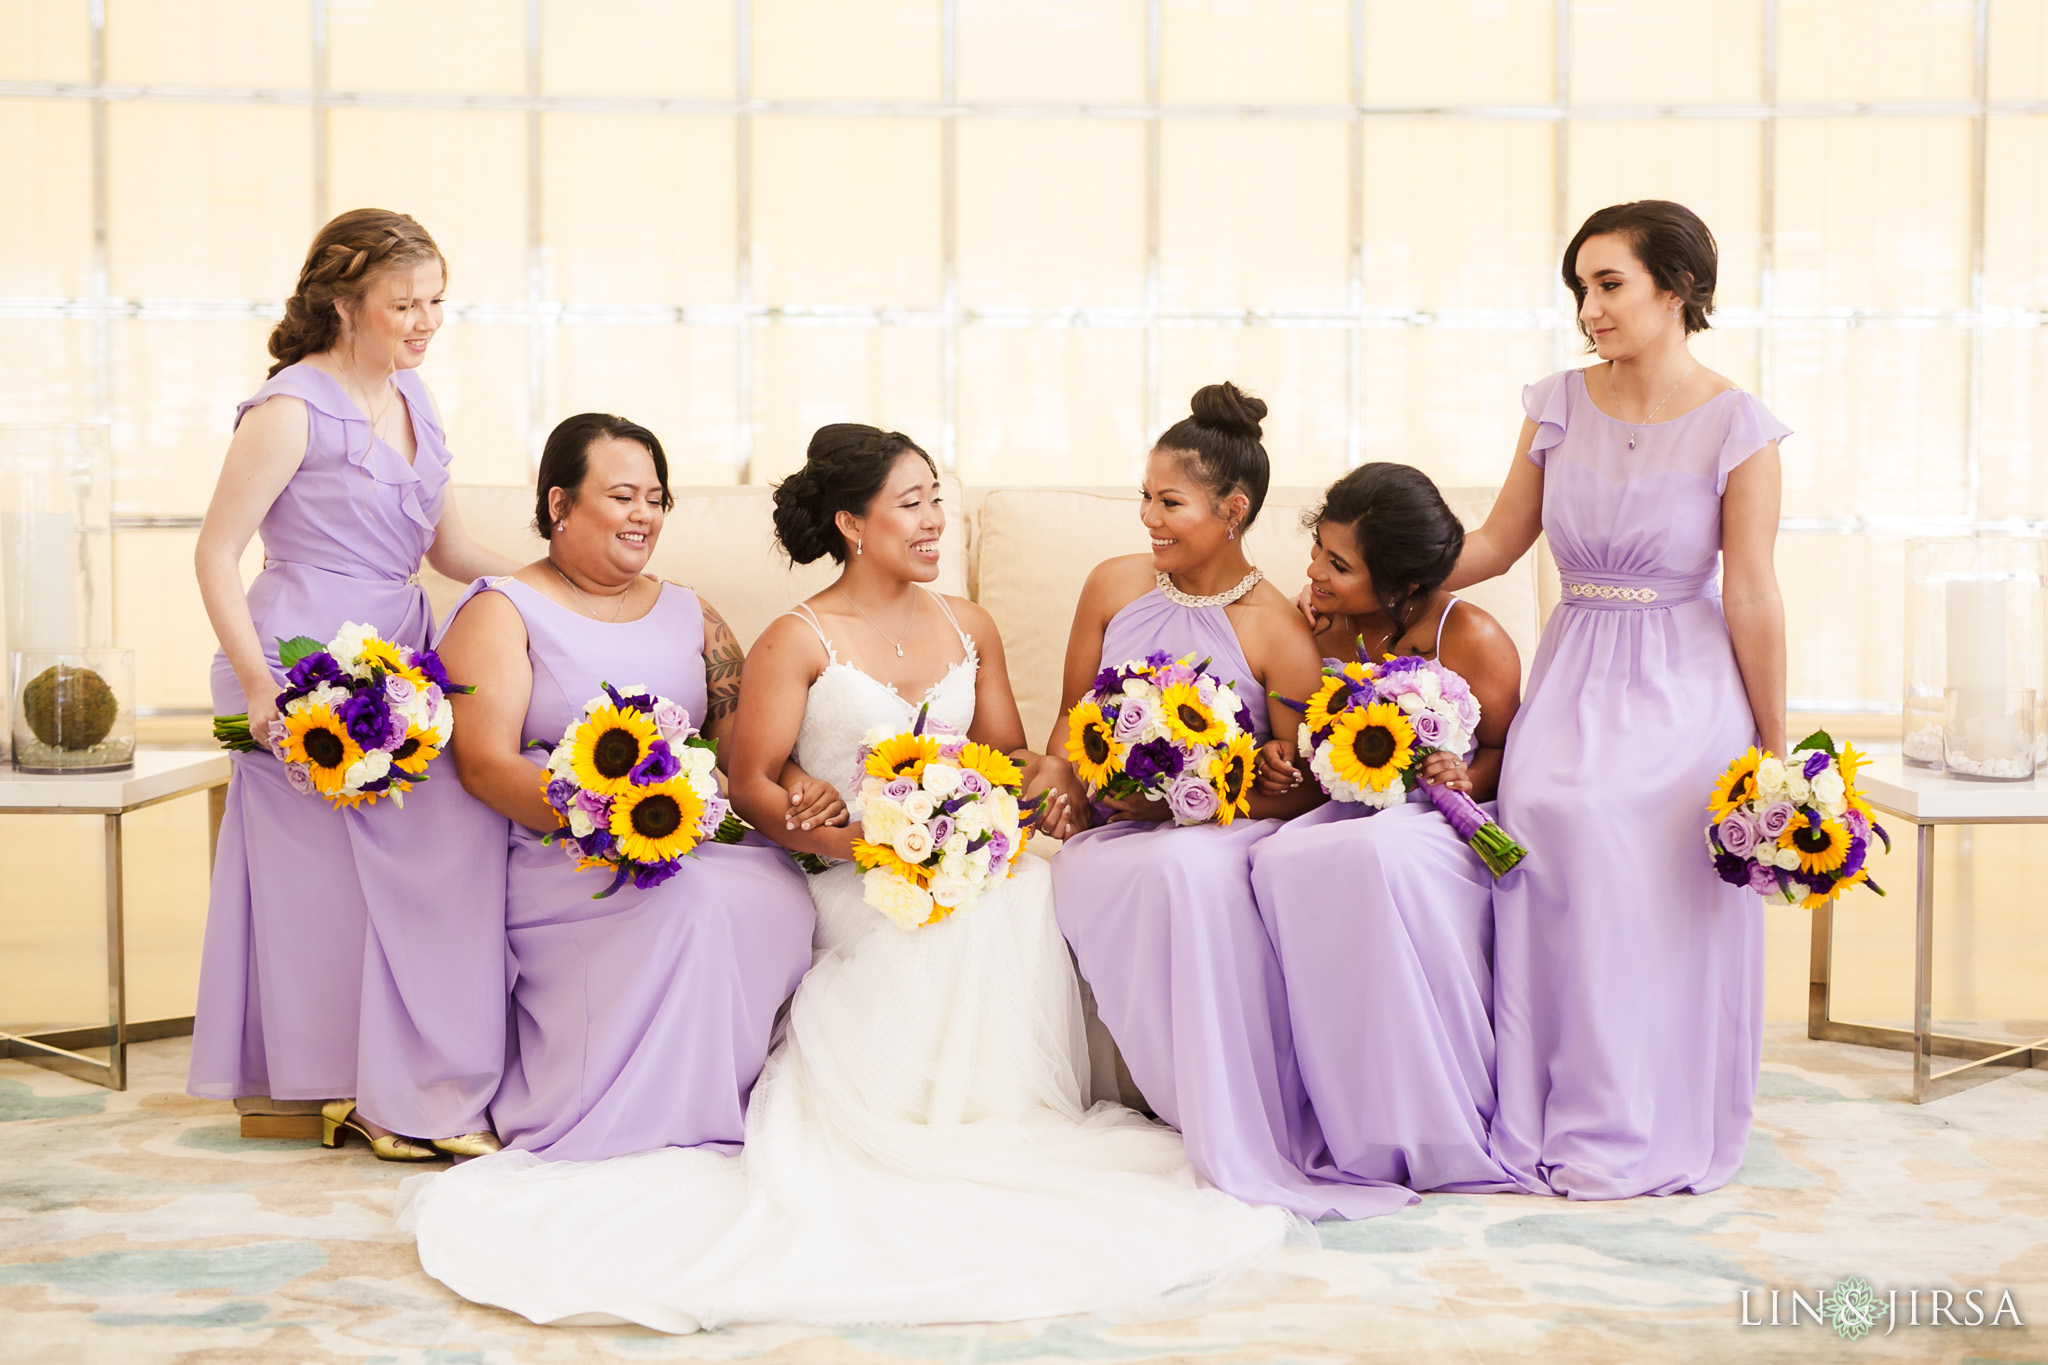 007 hyatt regency huntington beach bridesmaids wedding photography